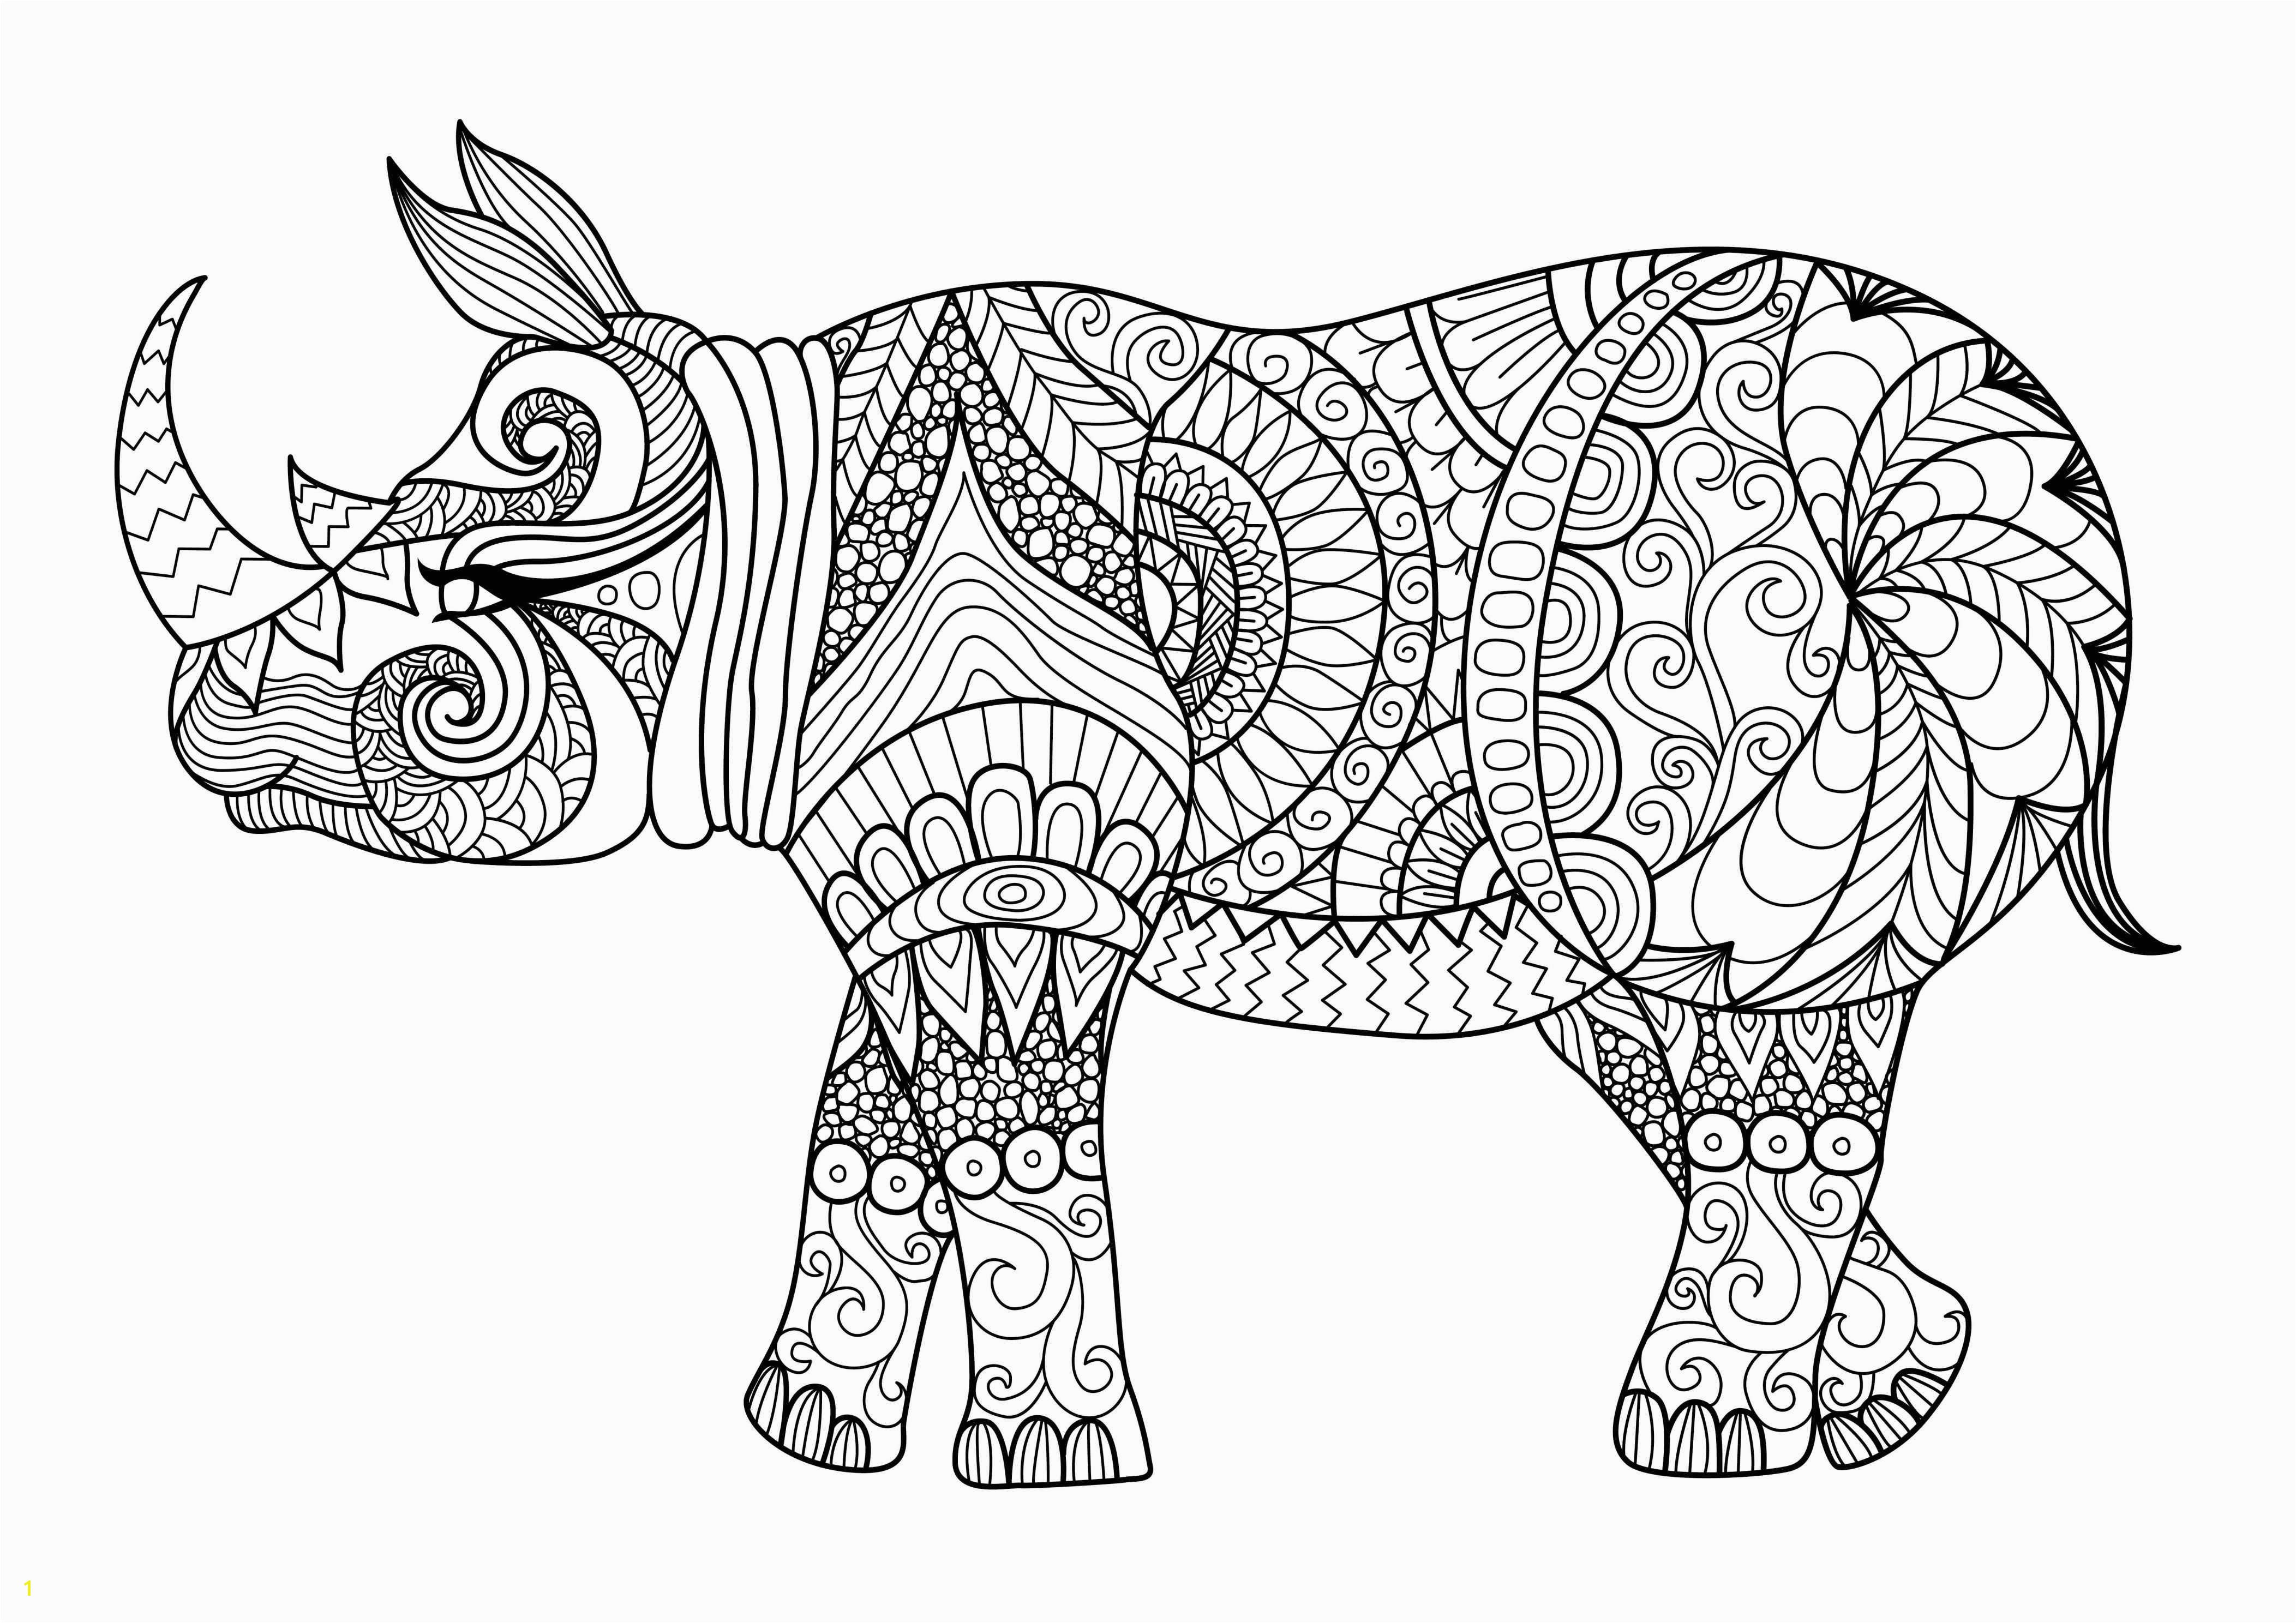 Baby Coloring Pages New Media Cache Ec0 Pinimg originals 2b 06 0d Baby Coloring Pages